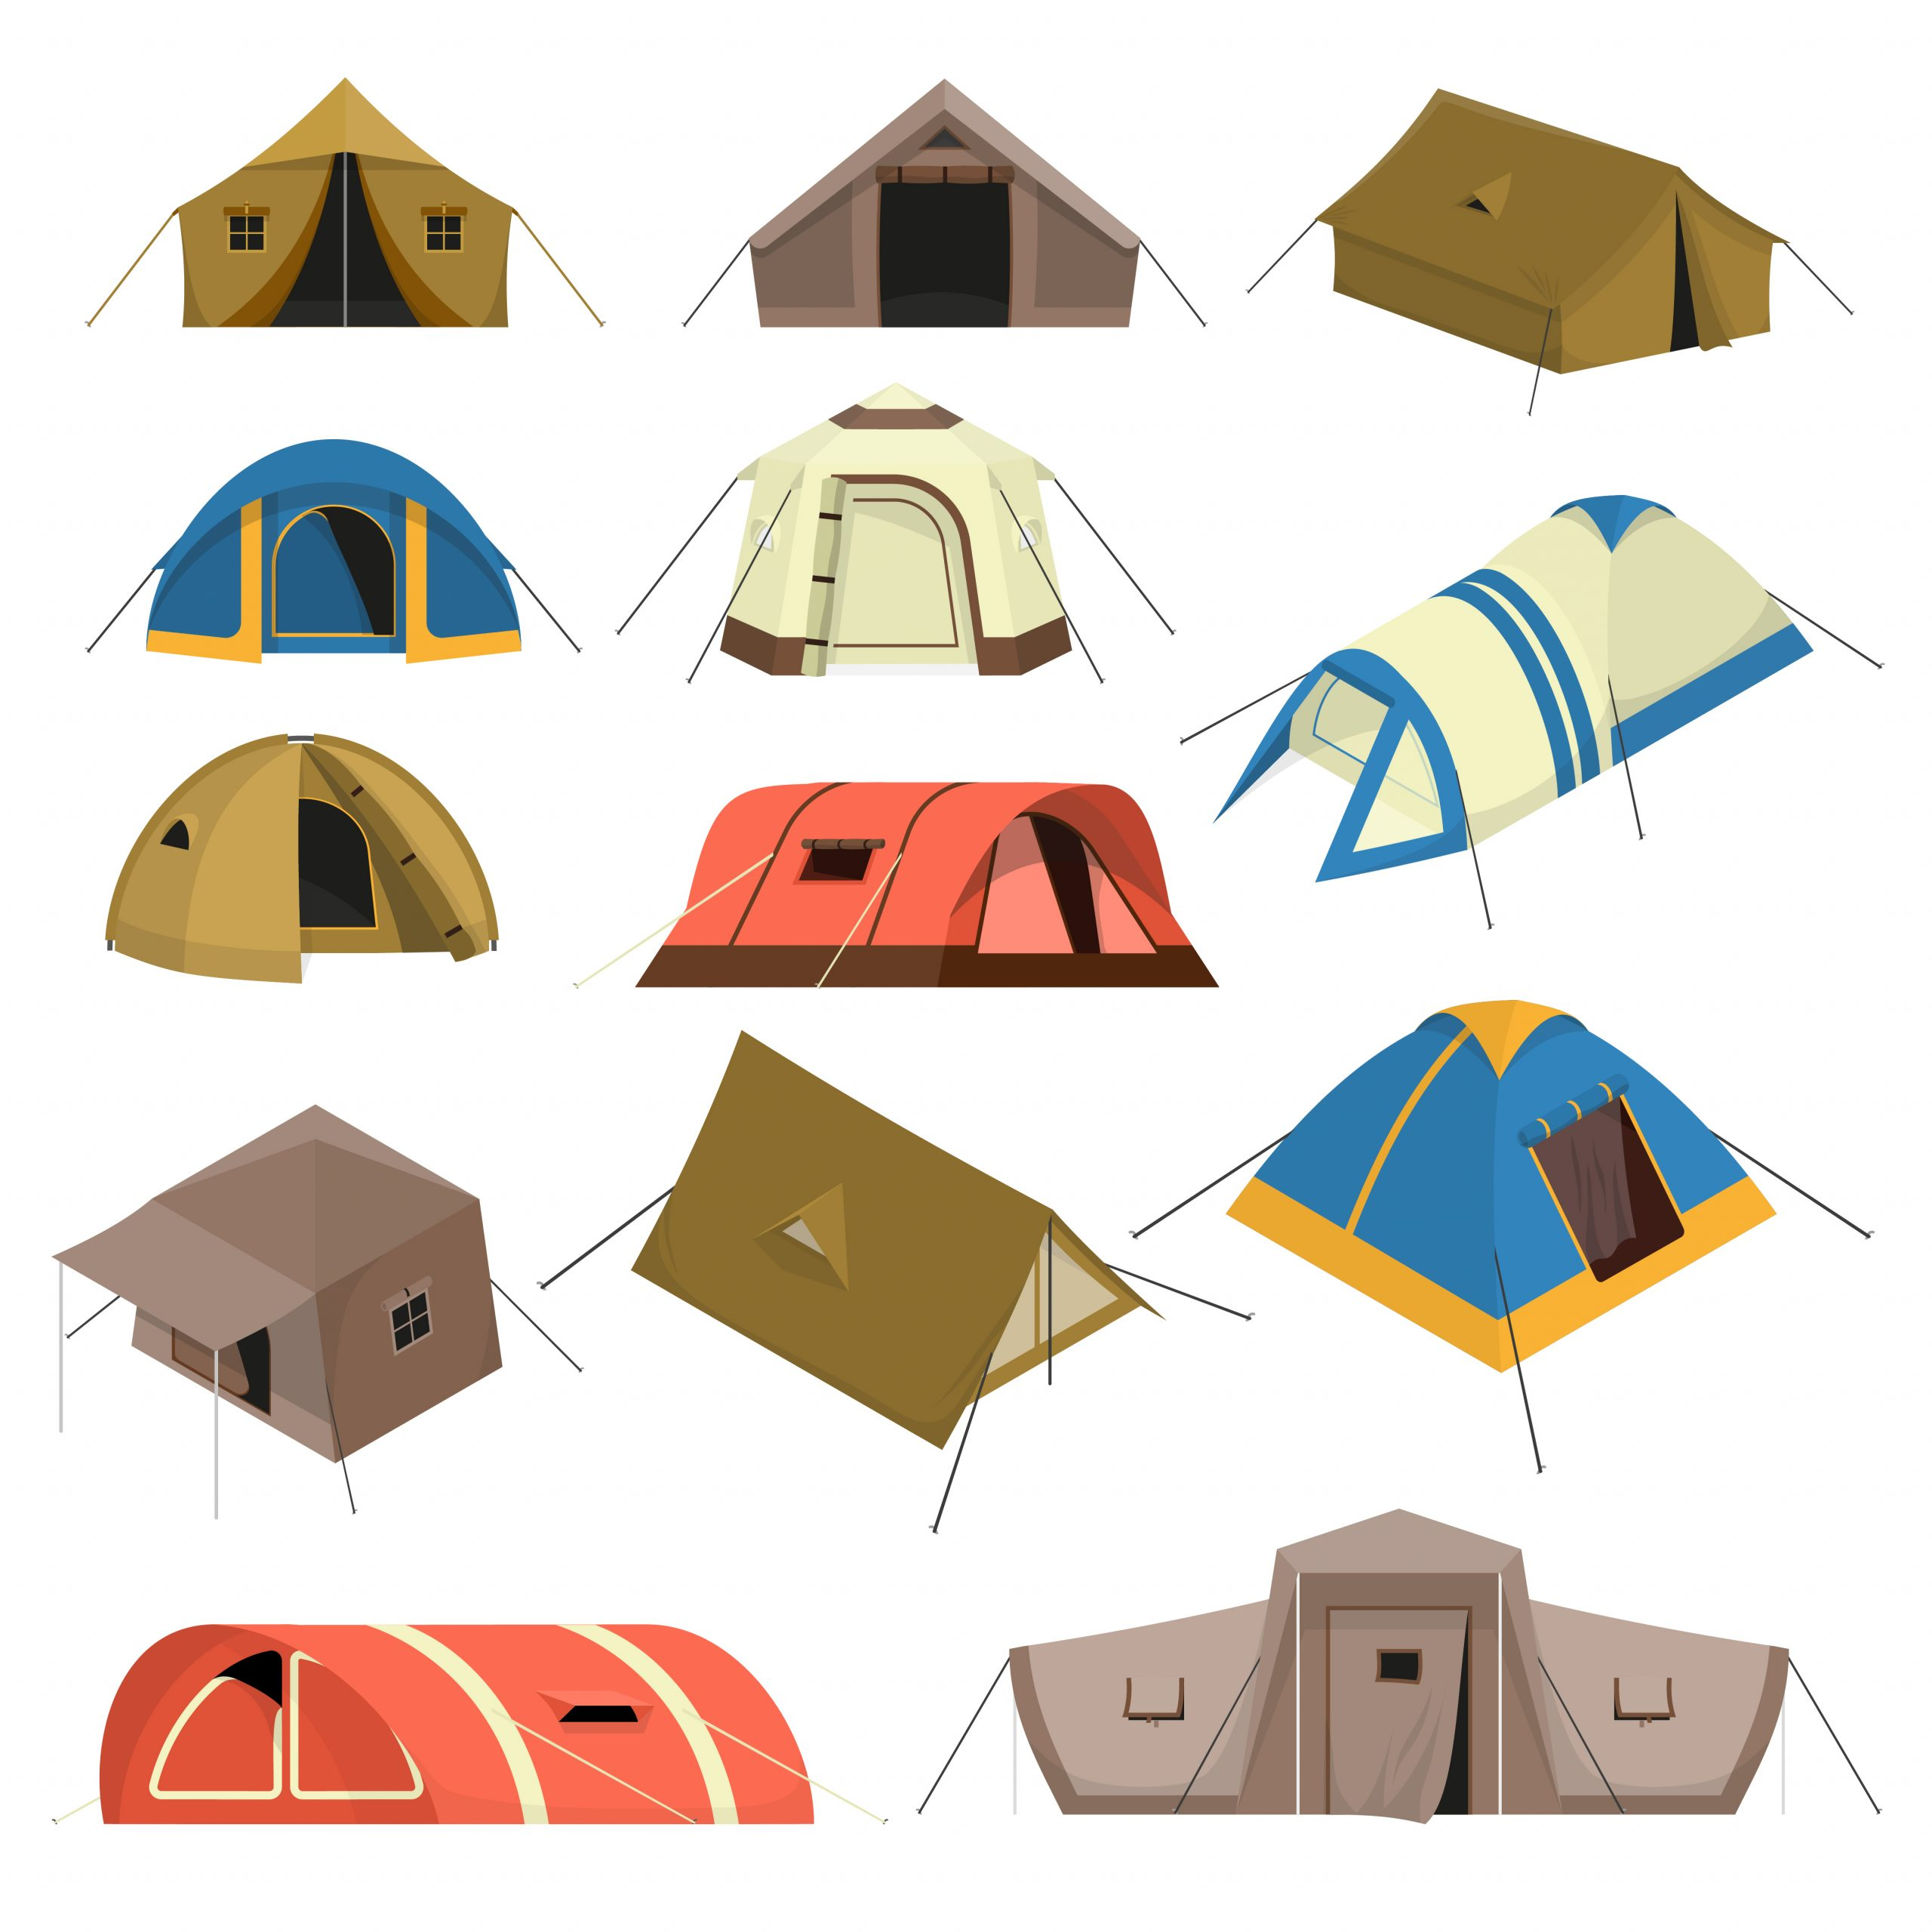 Best 2 Man Tent for Wild Camping